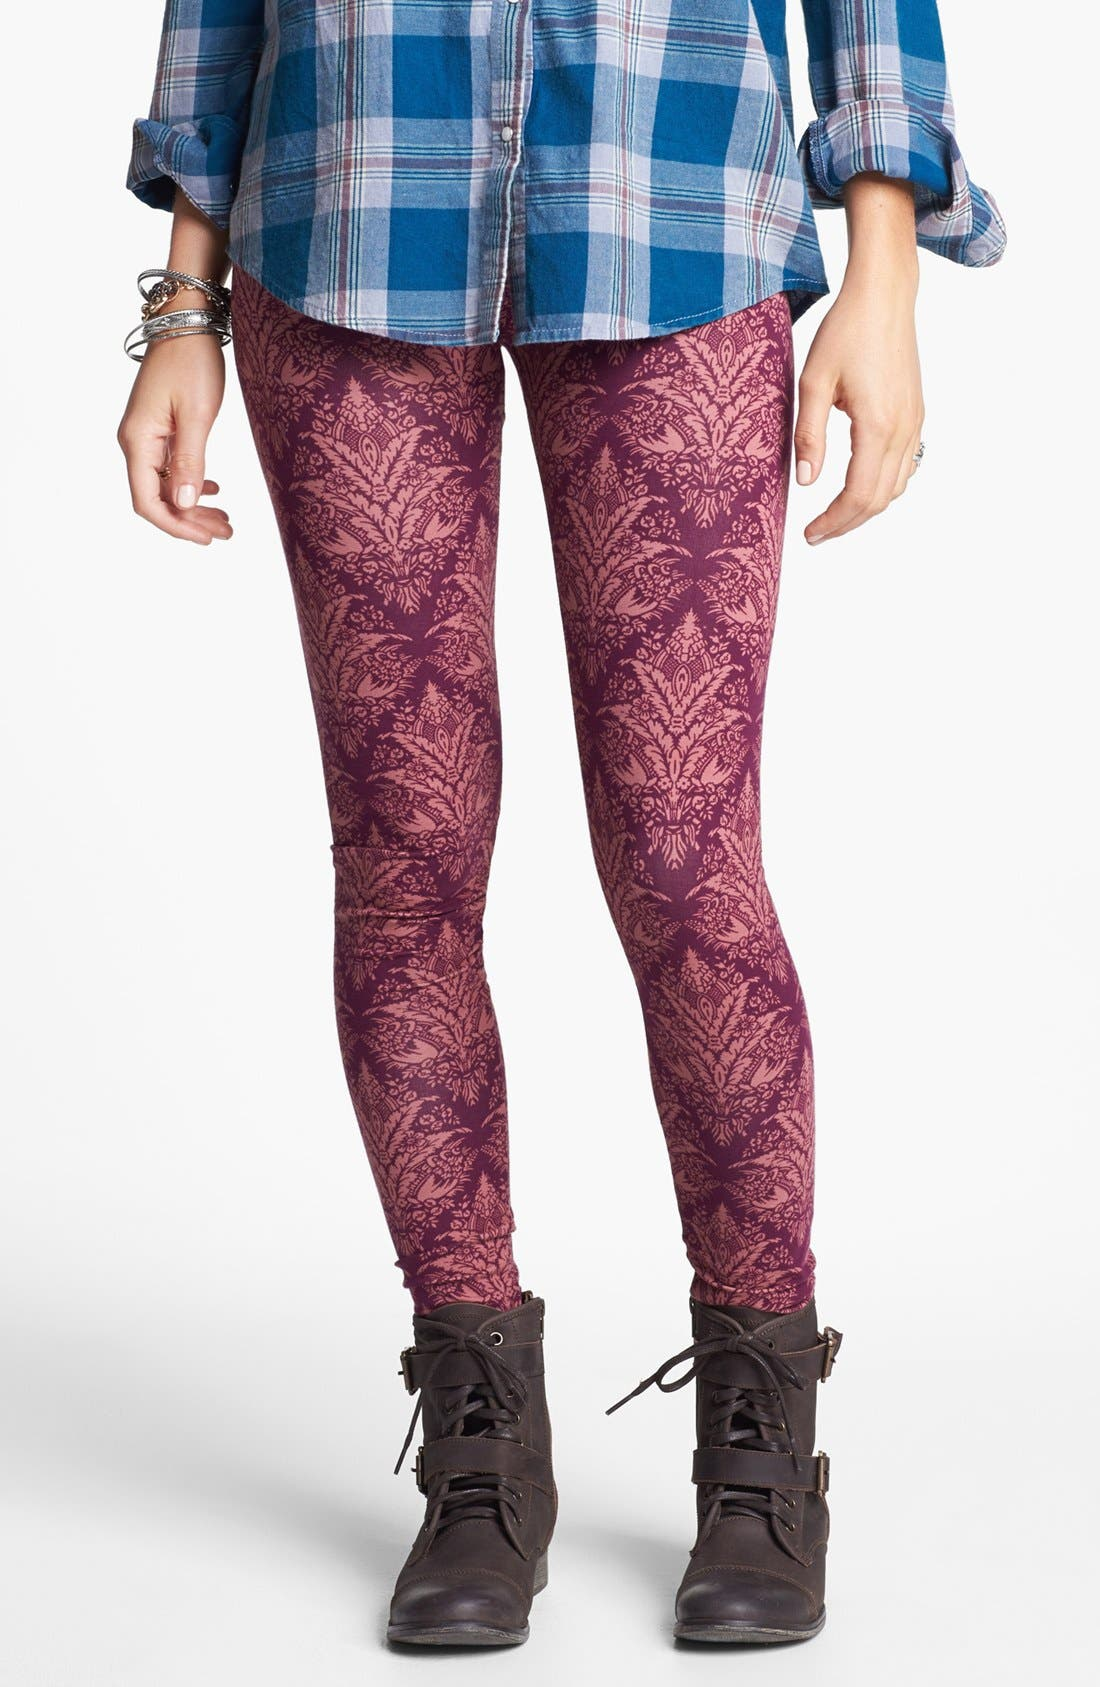 Alternate Image 1 Selected - Threads for Thought Damask Print High Waist Leggings (Juniors)